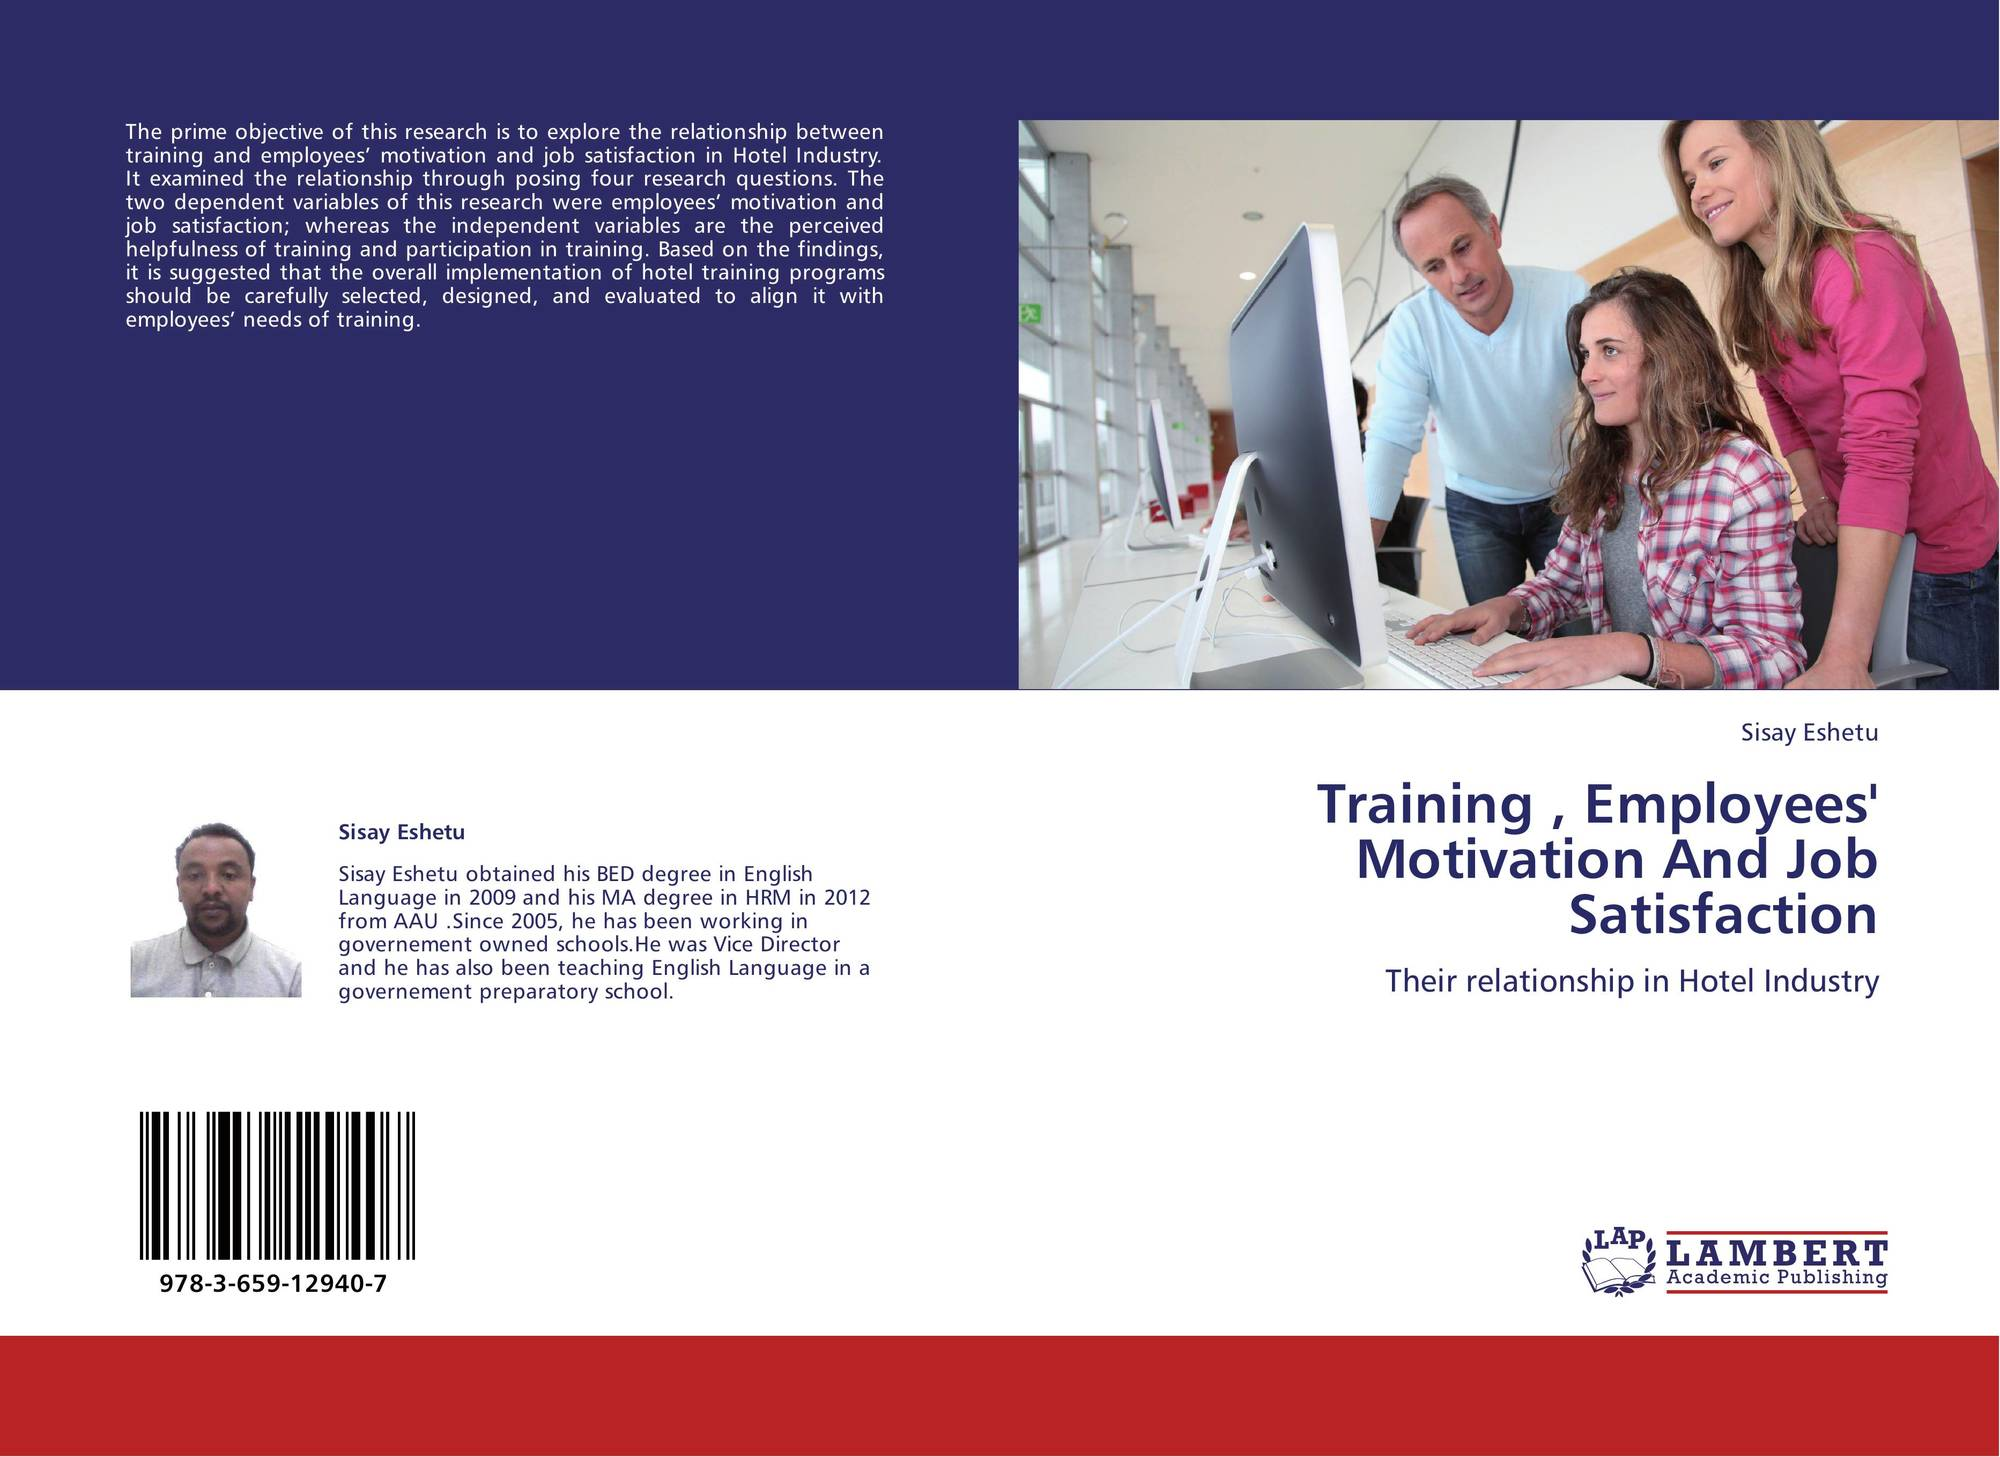 employee motivation and satisfaction in the hotel industry Main topic of this dissertation, the motivation of employees in the hotel industry since intelligence are combined, 21% of the variance of employee motivation in the hotel industry can be explained this result given time there might be a substantial discrepancy between the anticipated satisfaction from an outcome and.